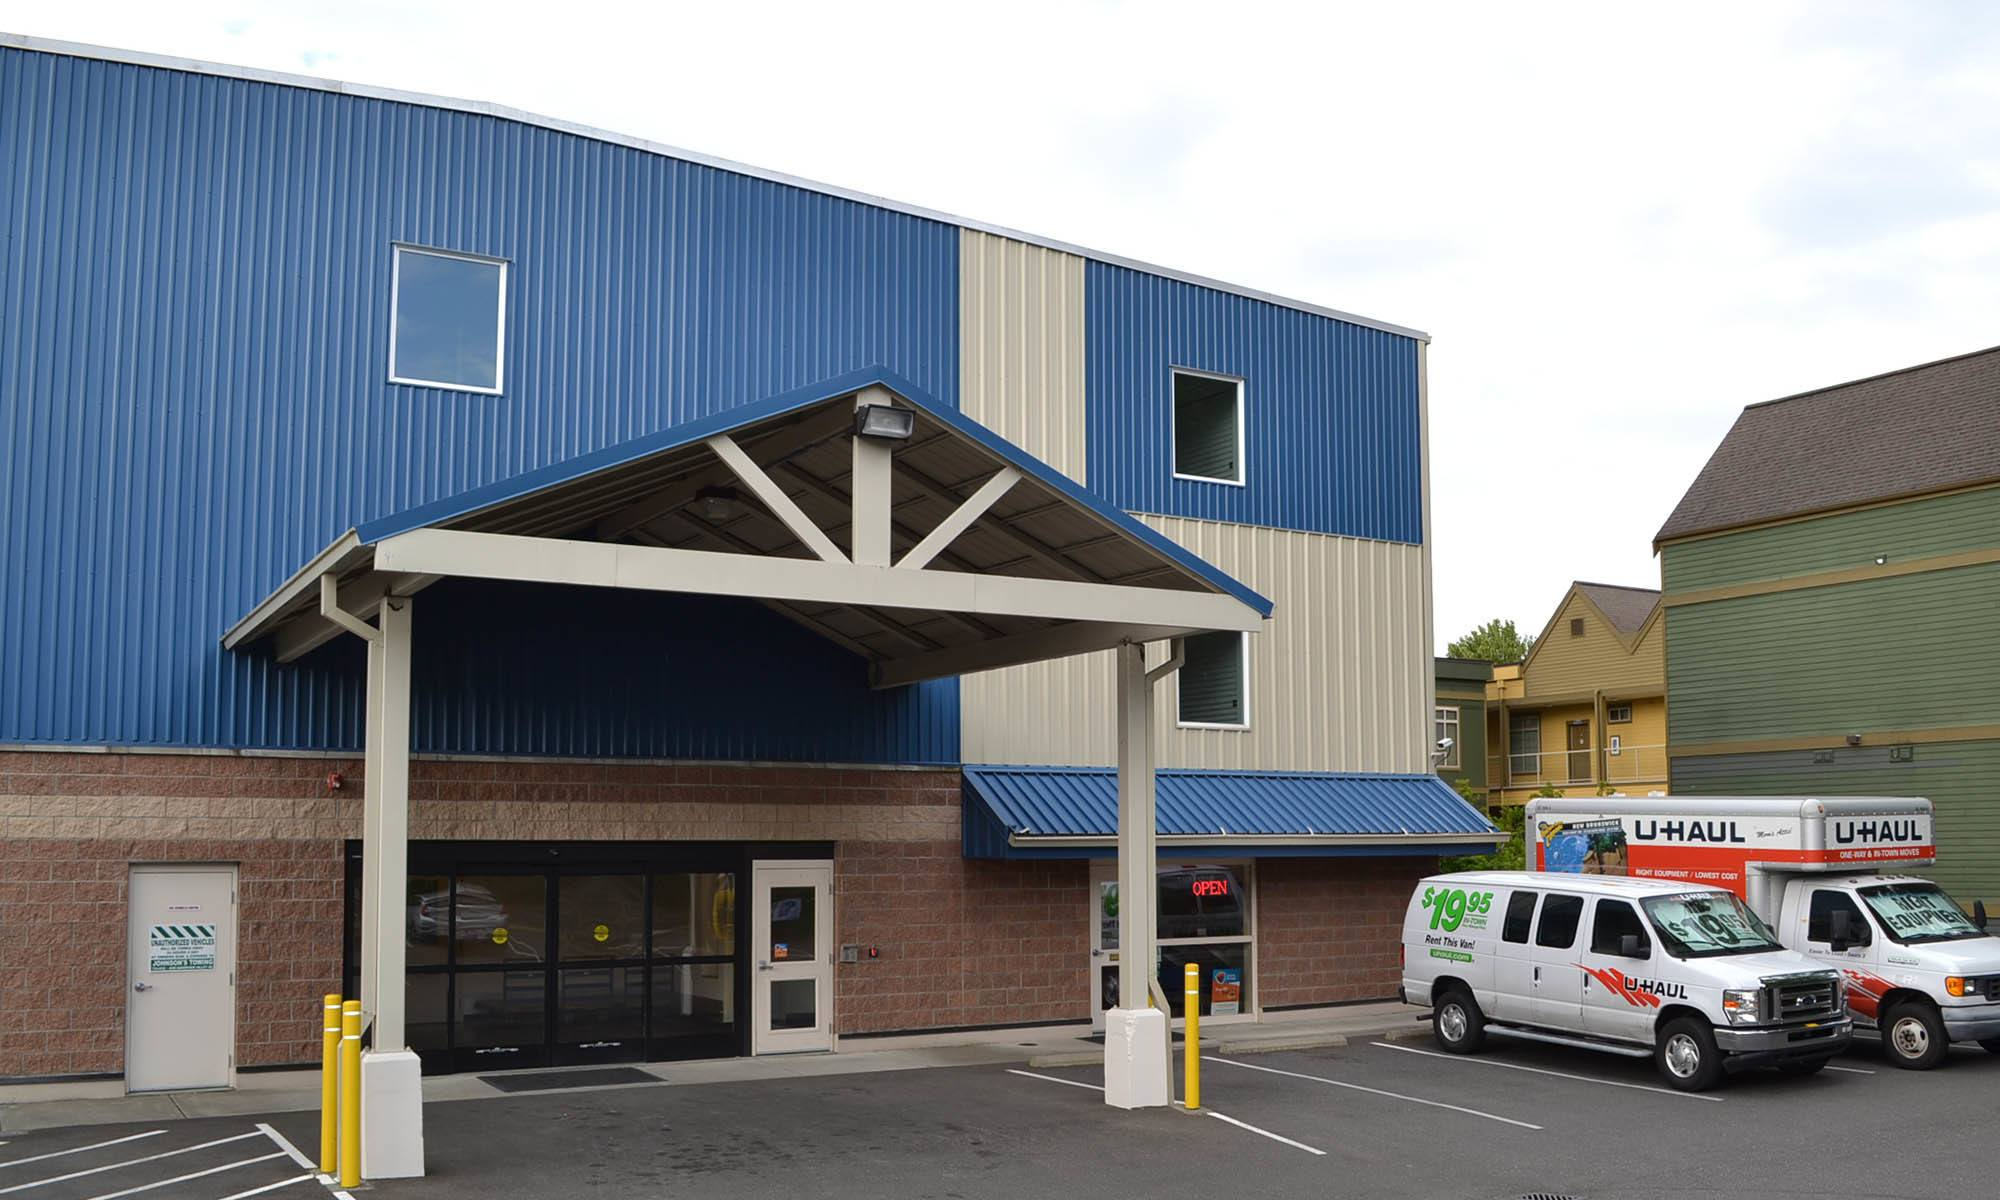 Exterior of self storage facility in Bellingham, Washington